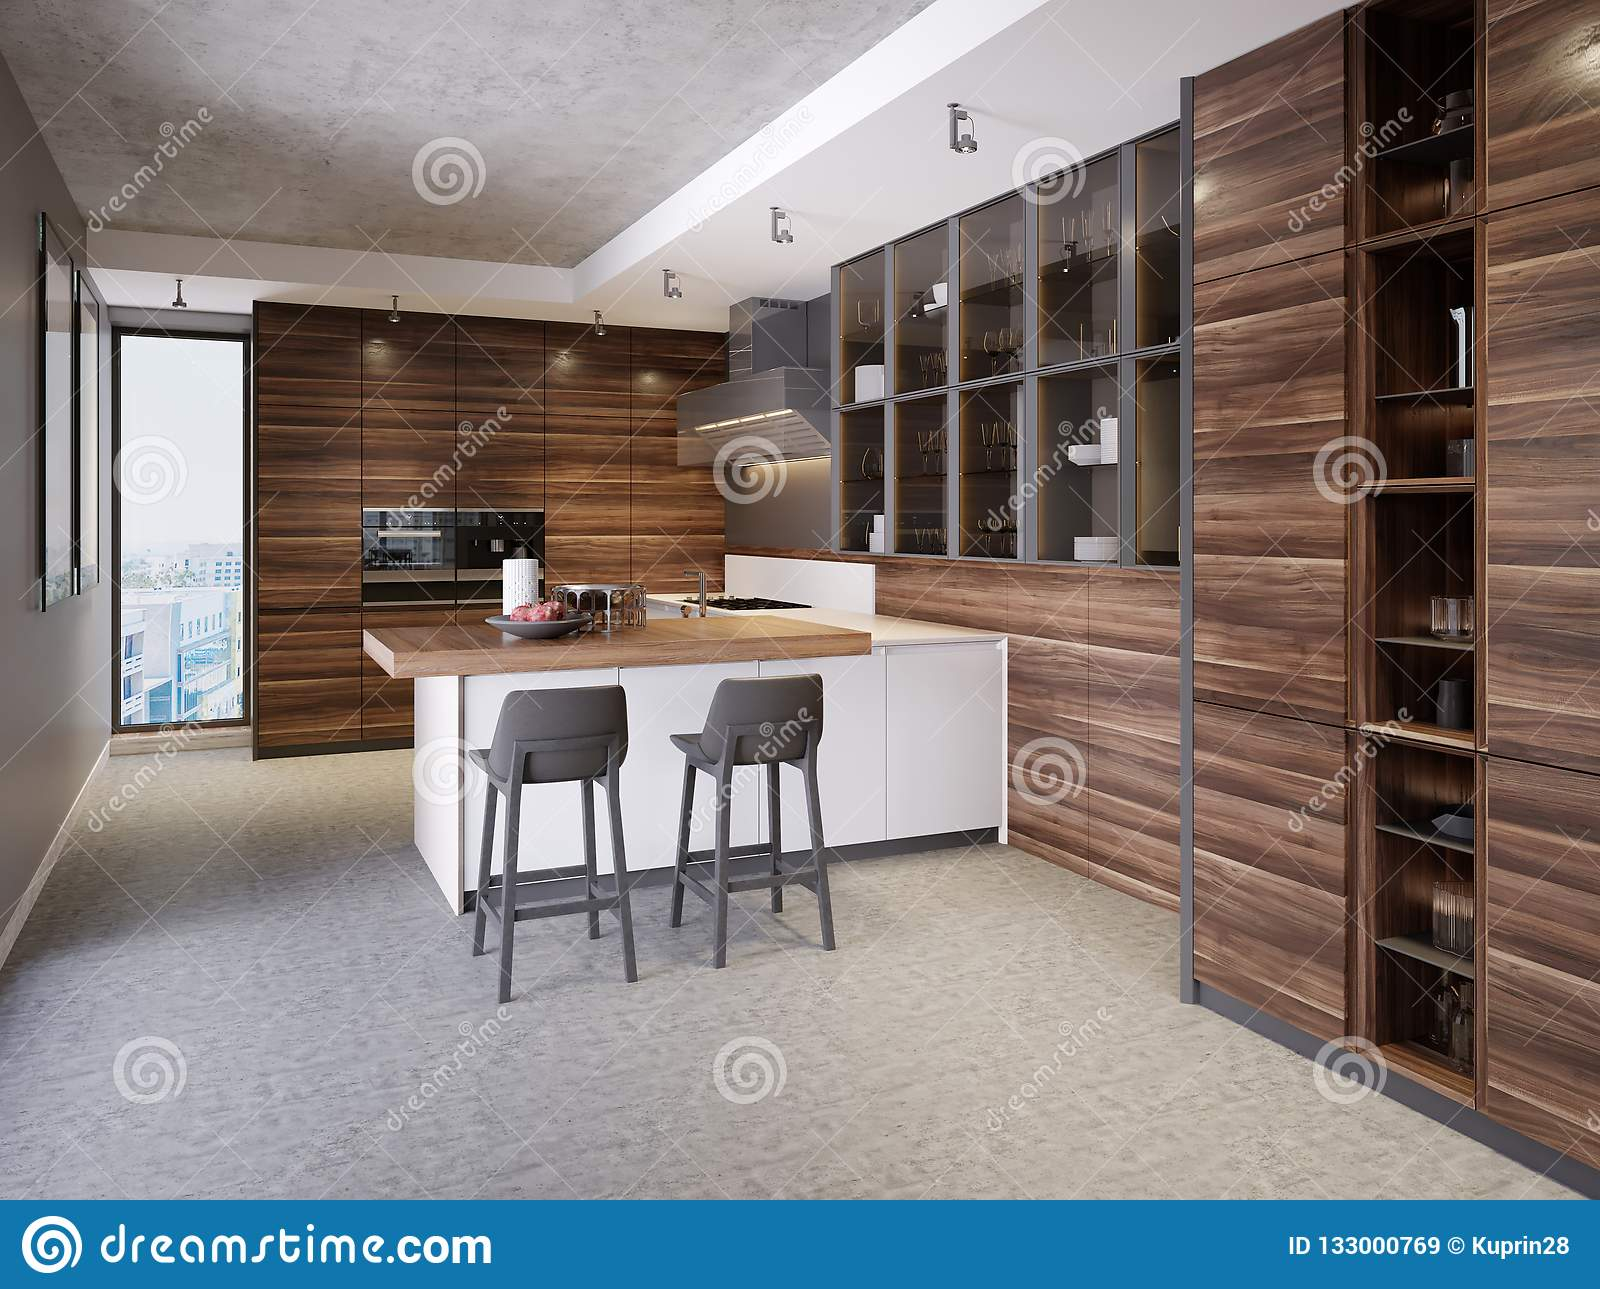 A Kitchen With A Kitchen Island With Two Chairs In A Modern ...